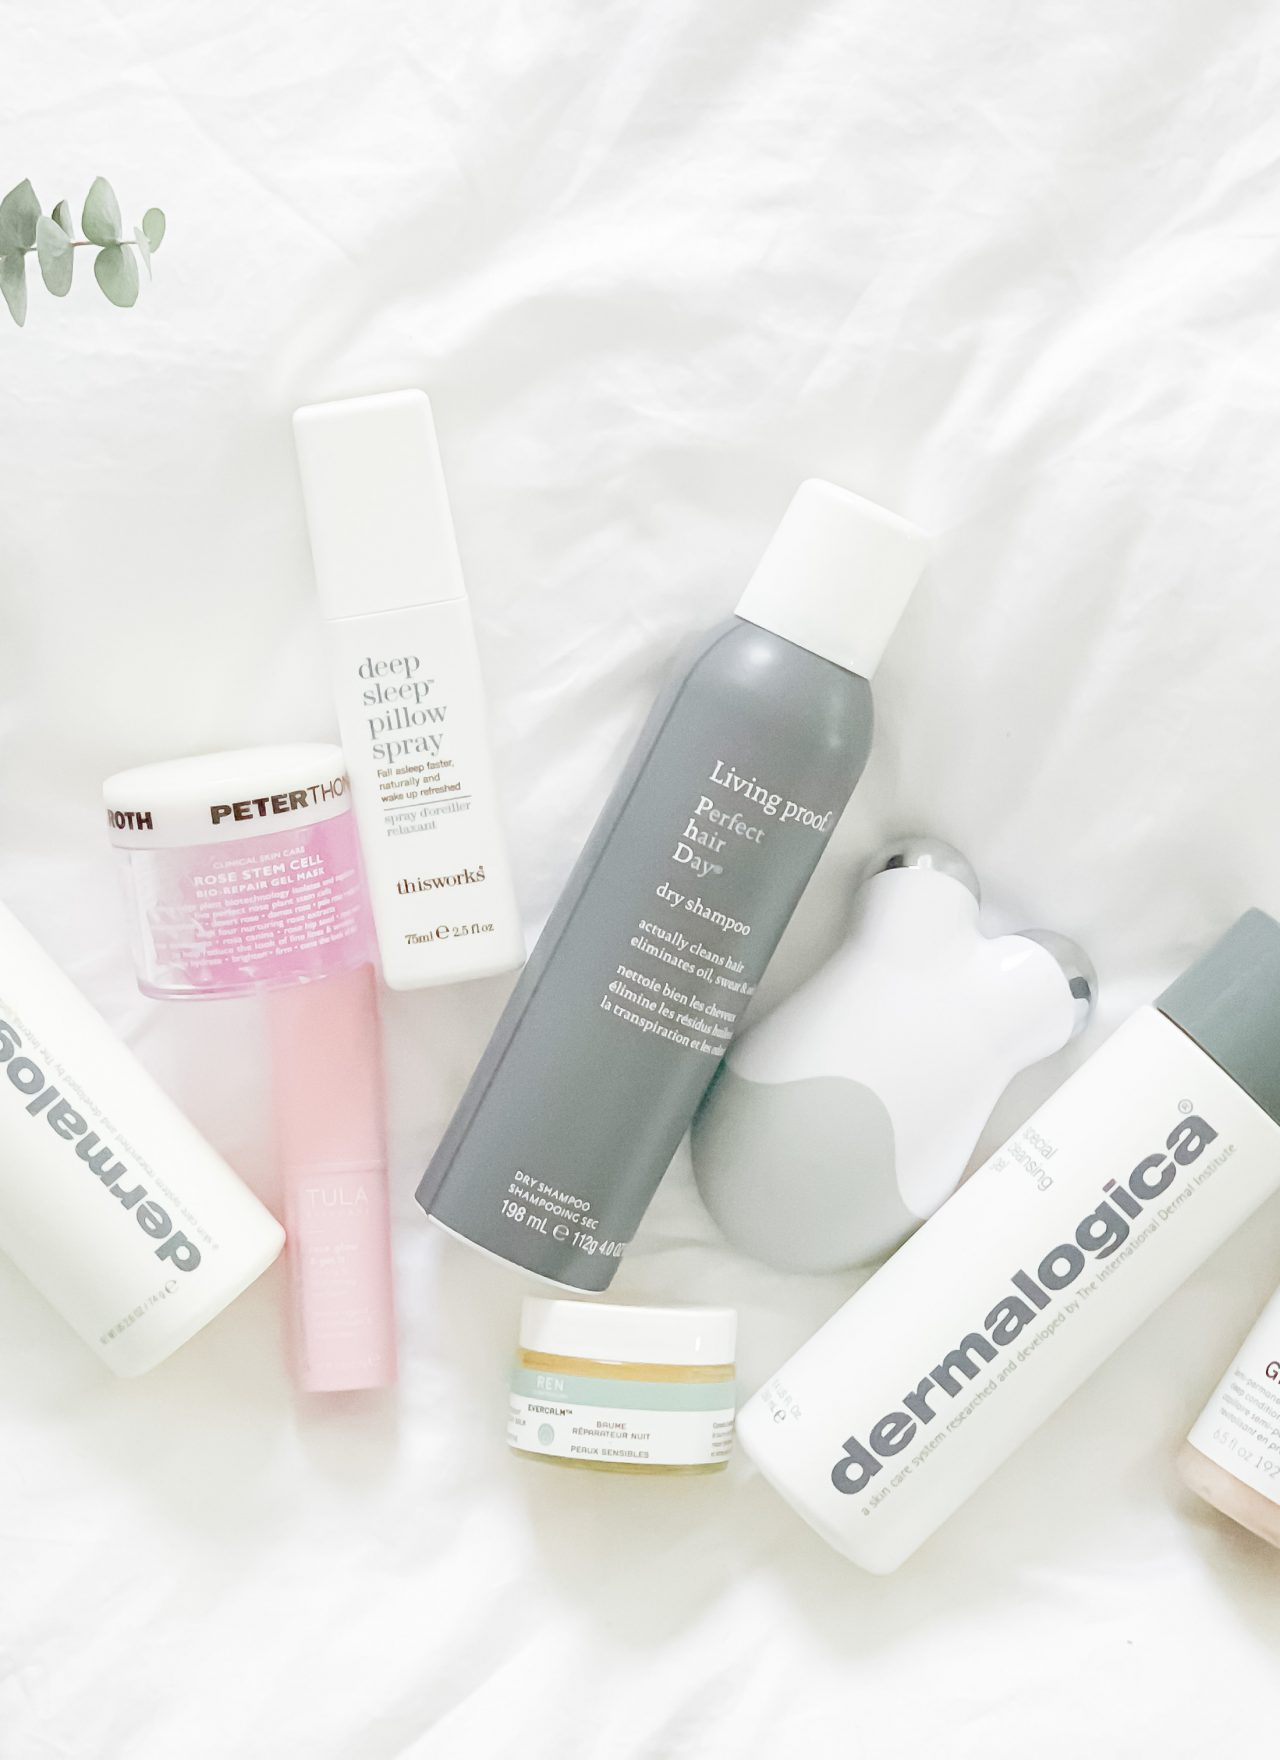 DERMSTORE SALE FAVORITES| I am sharing my tried-and-true favorite products from the Dermstore sale. Everything is 20% off with the code SUMMER. Happy Shopping!